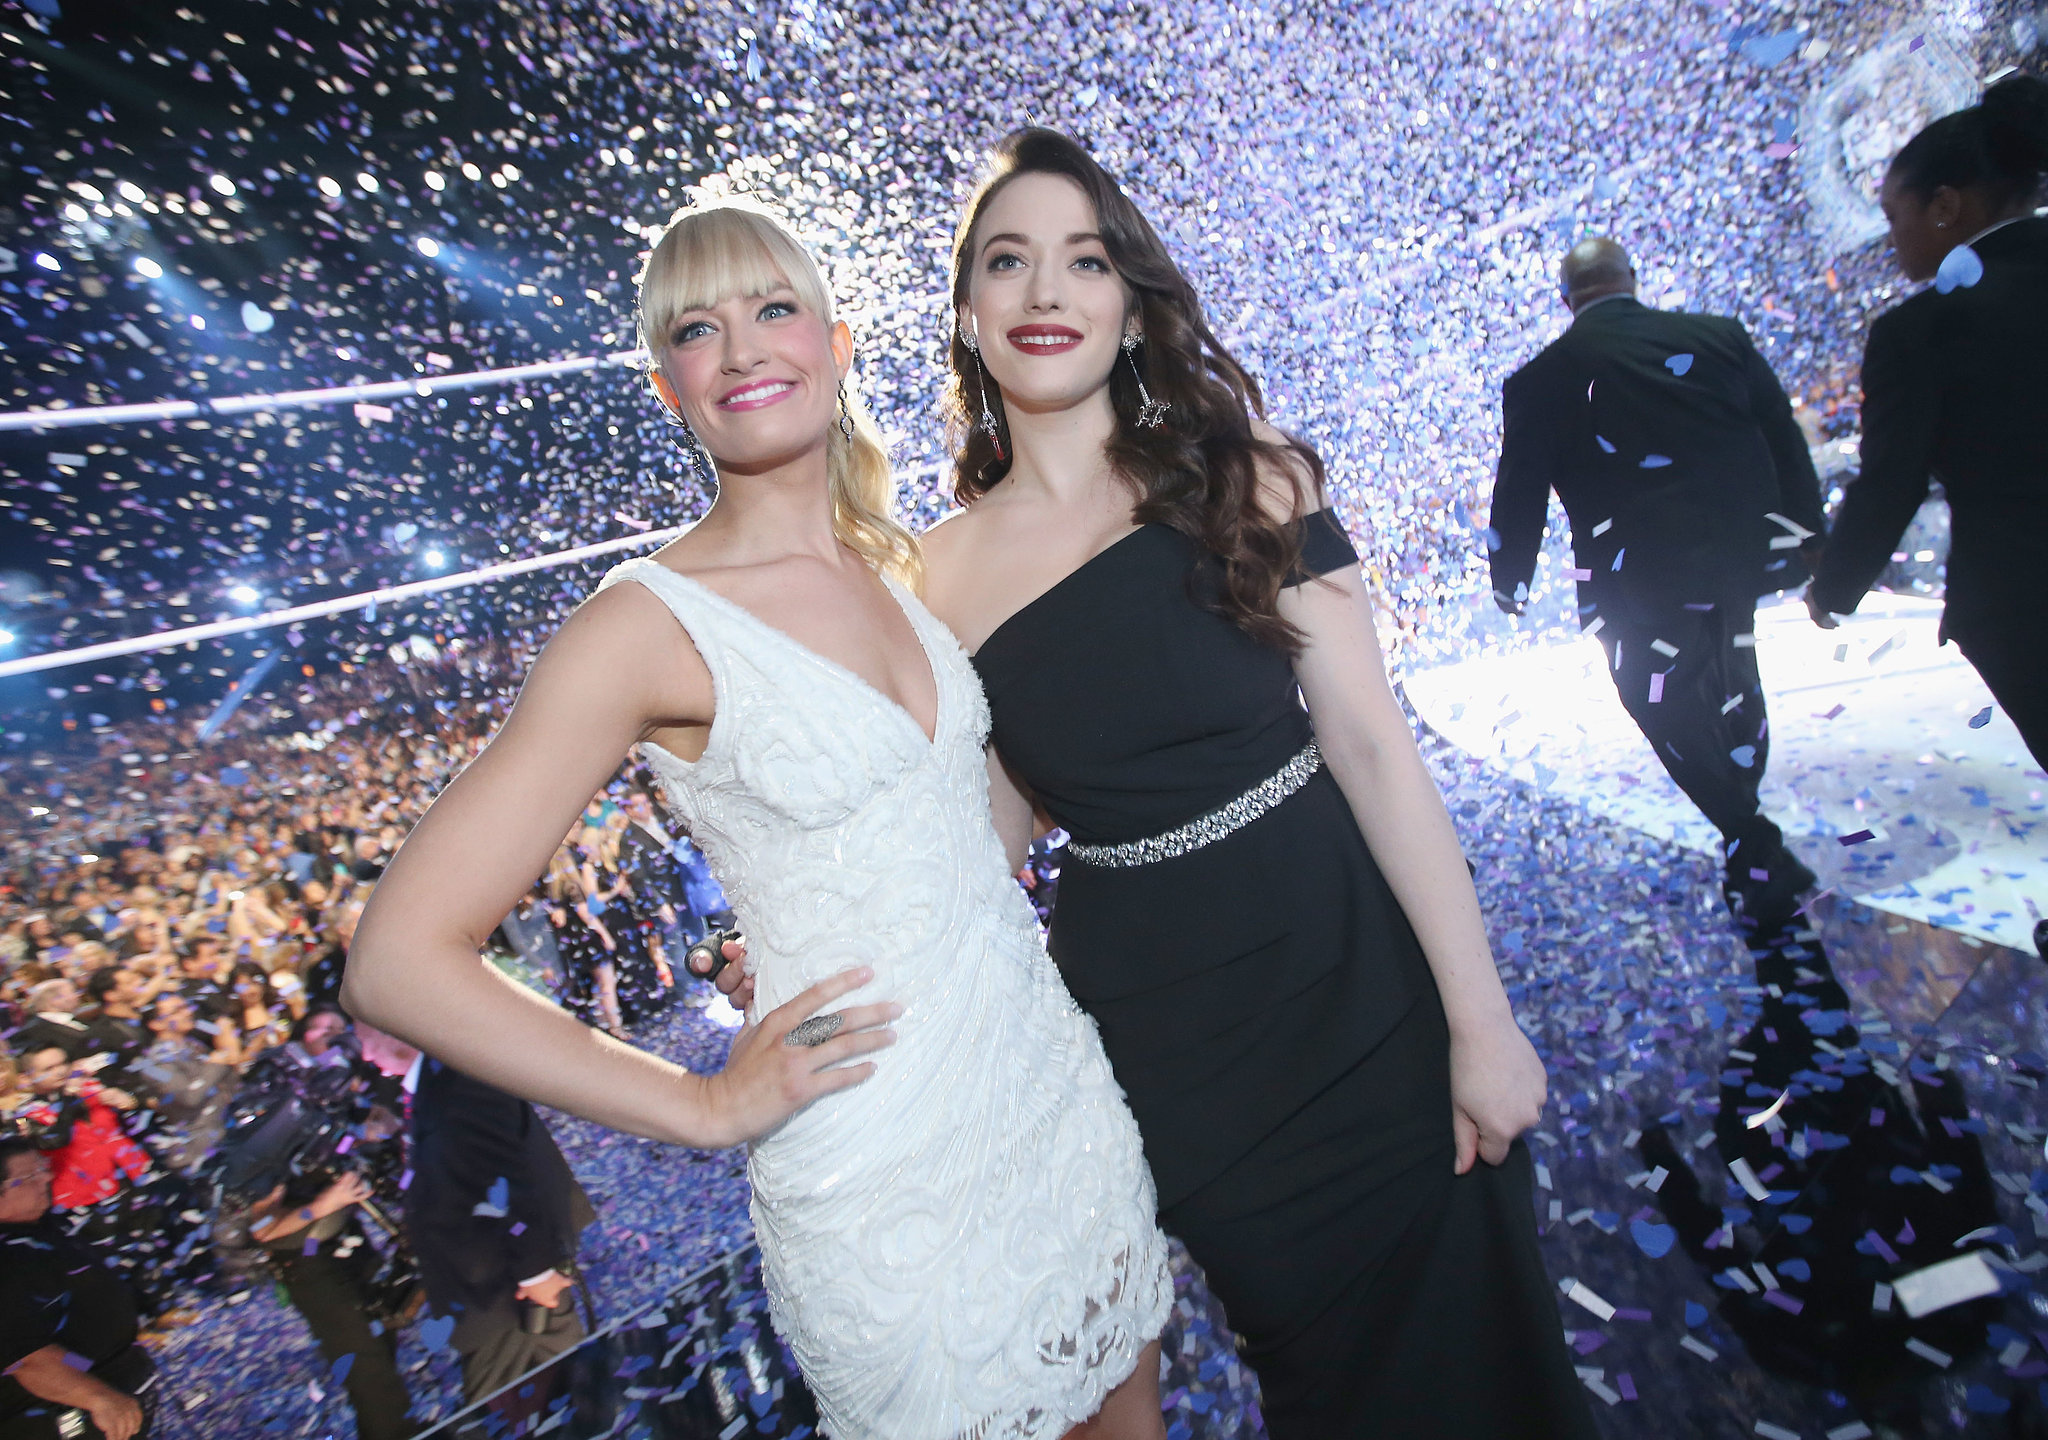 Beth-Kat-beamed-confetti-rained-over-stage-audience